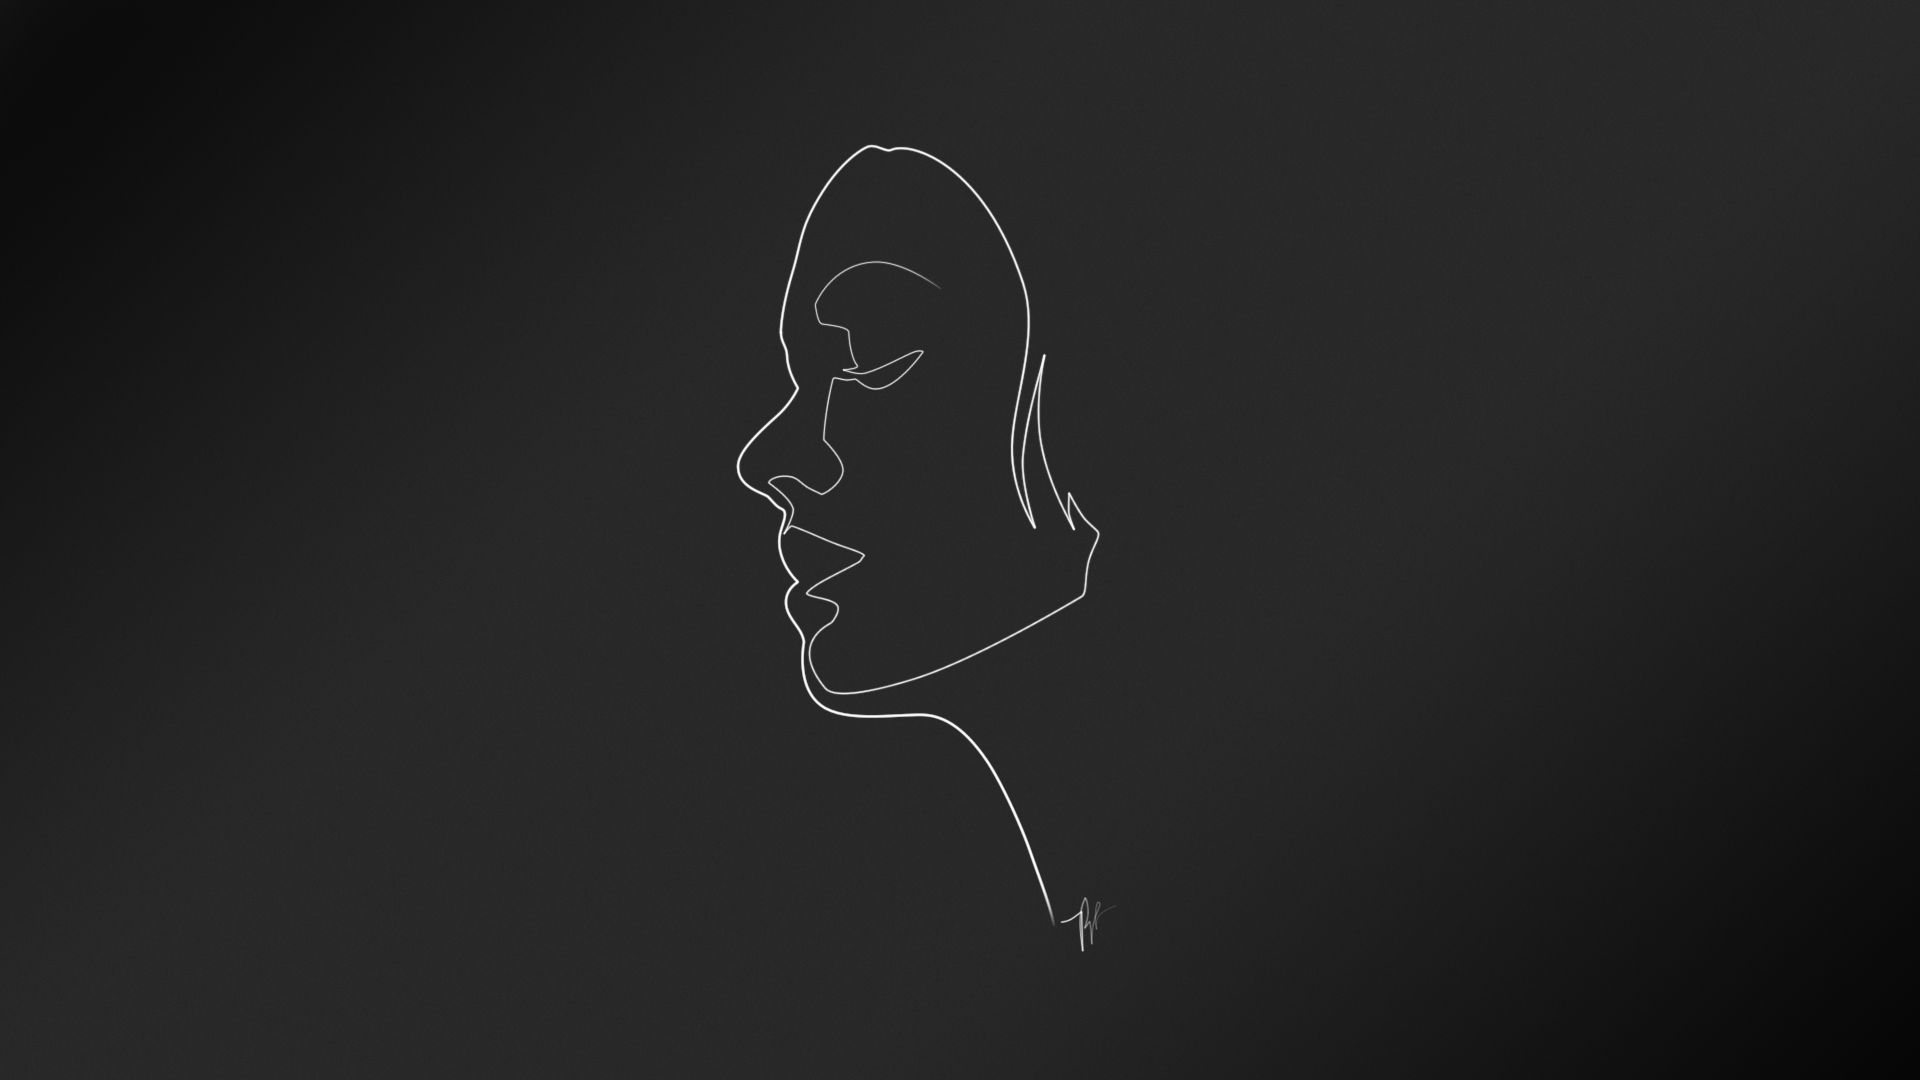 Minimalist Black And White Wallpapers Wallpaper Cave